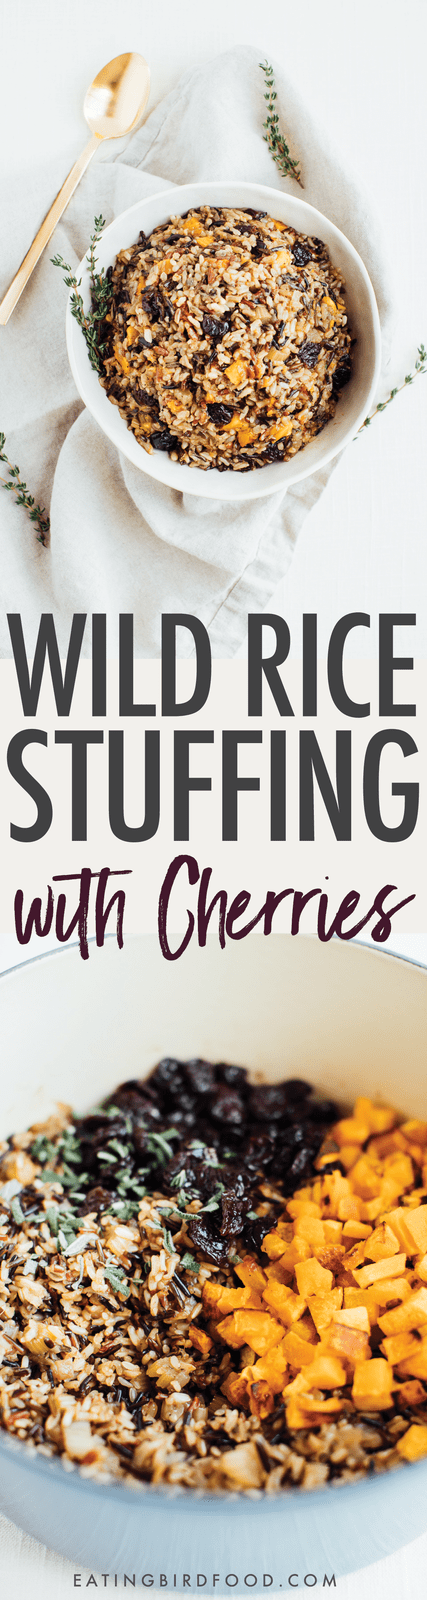 Dried sweet cherries and roasted butternut squash add a hint of sweetness to this savory wild rice stuffing. // Vegan + Gluten-free